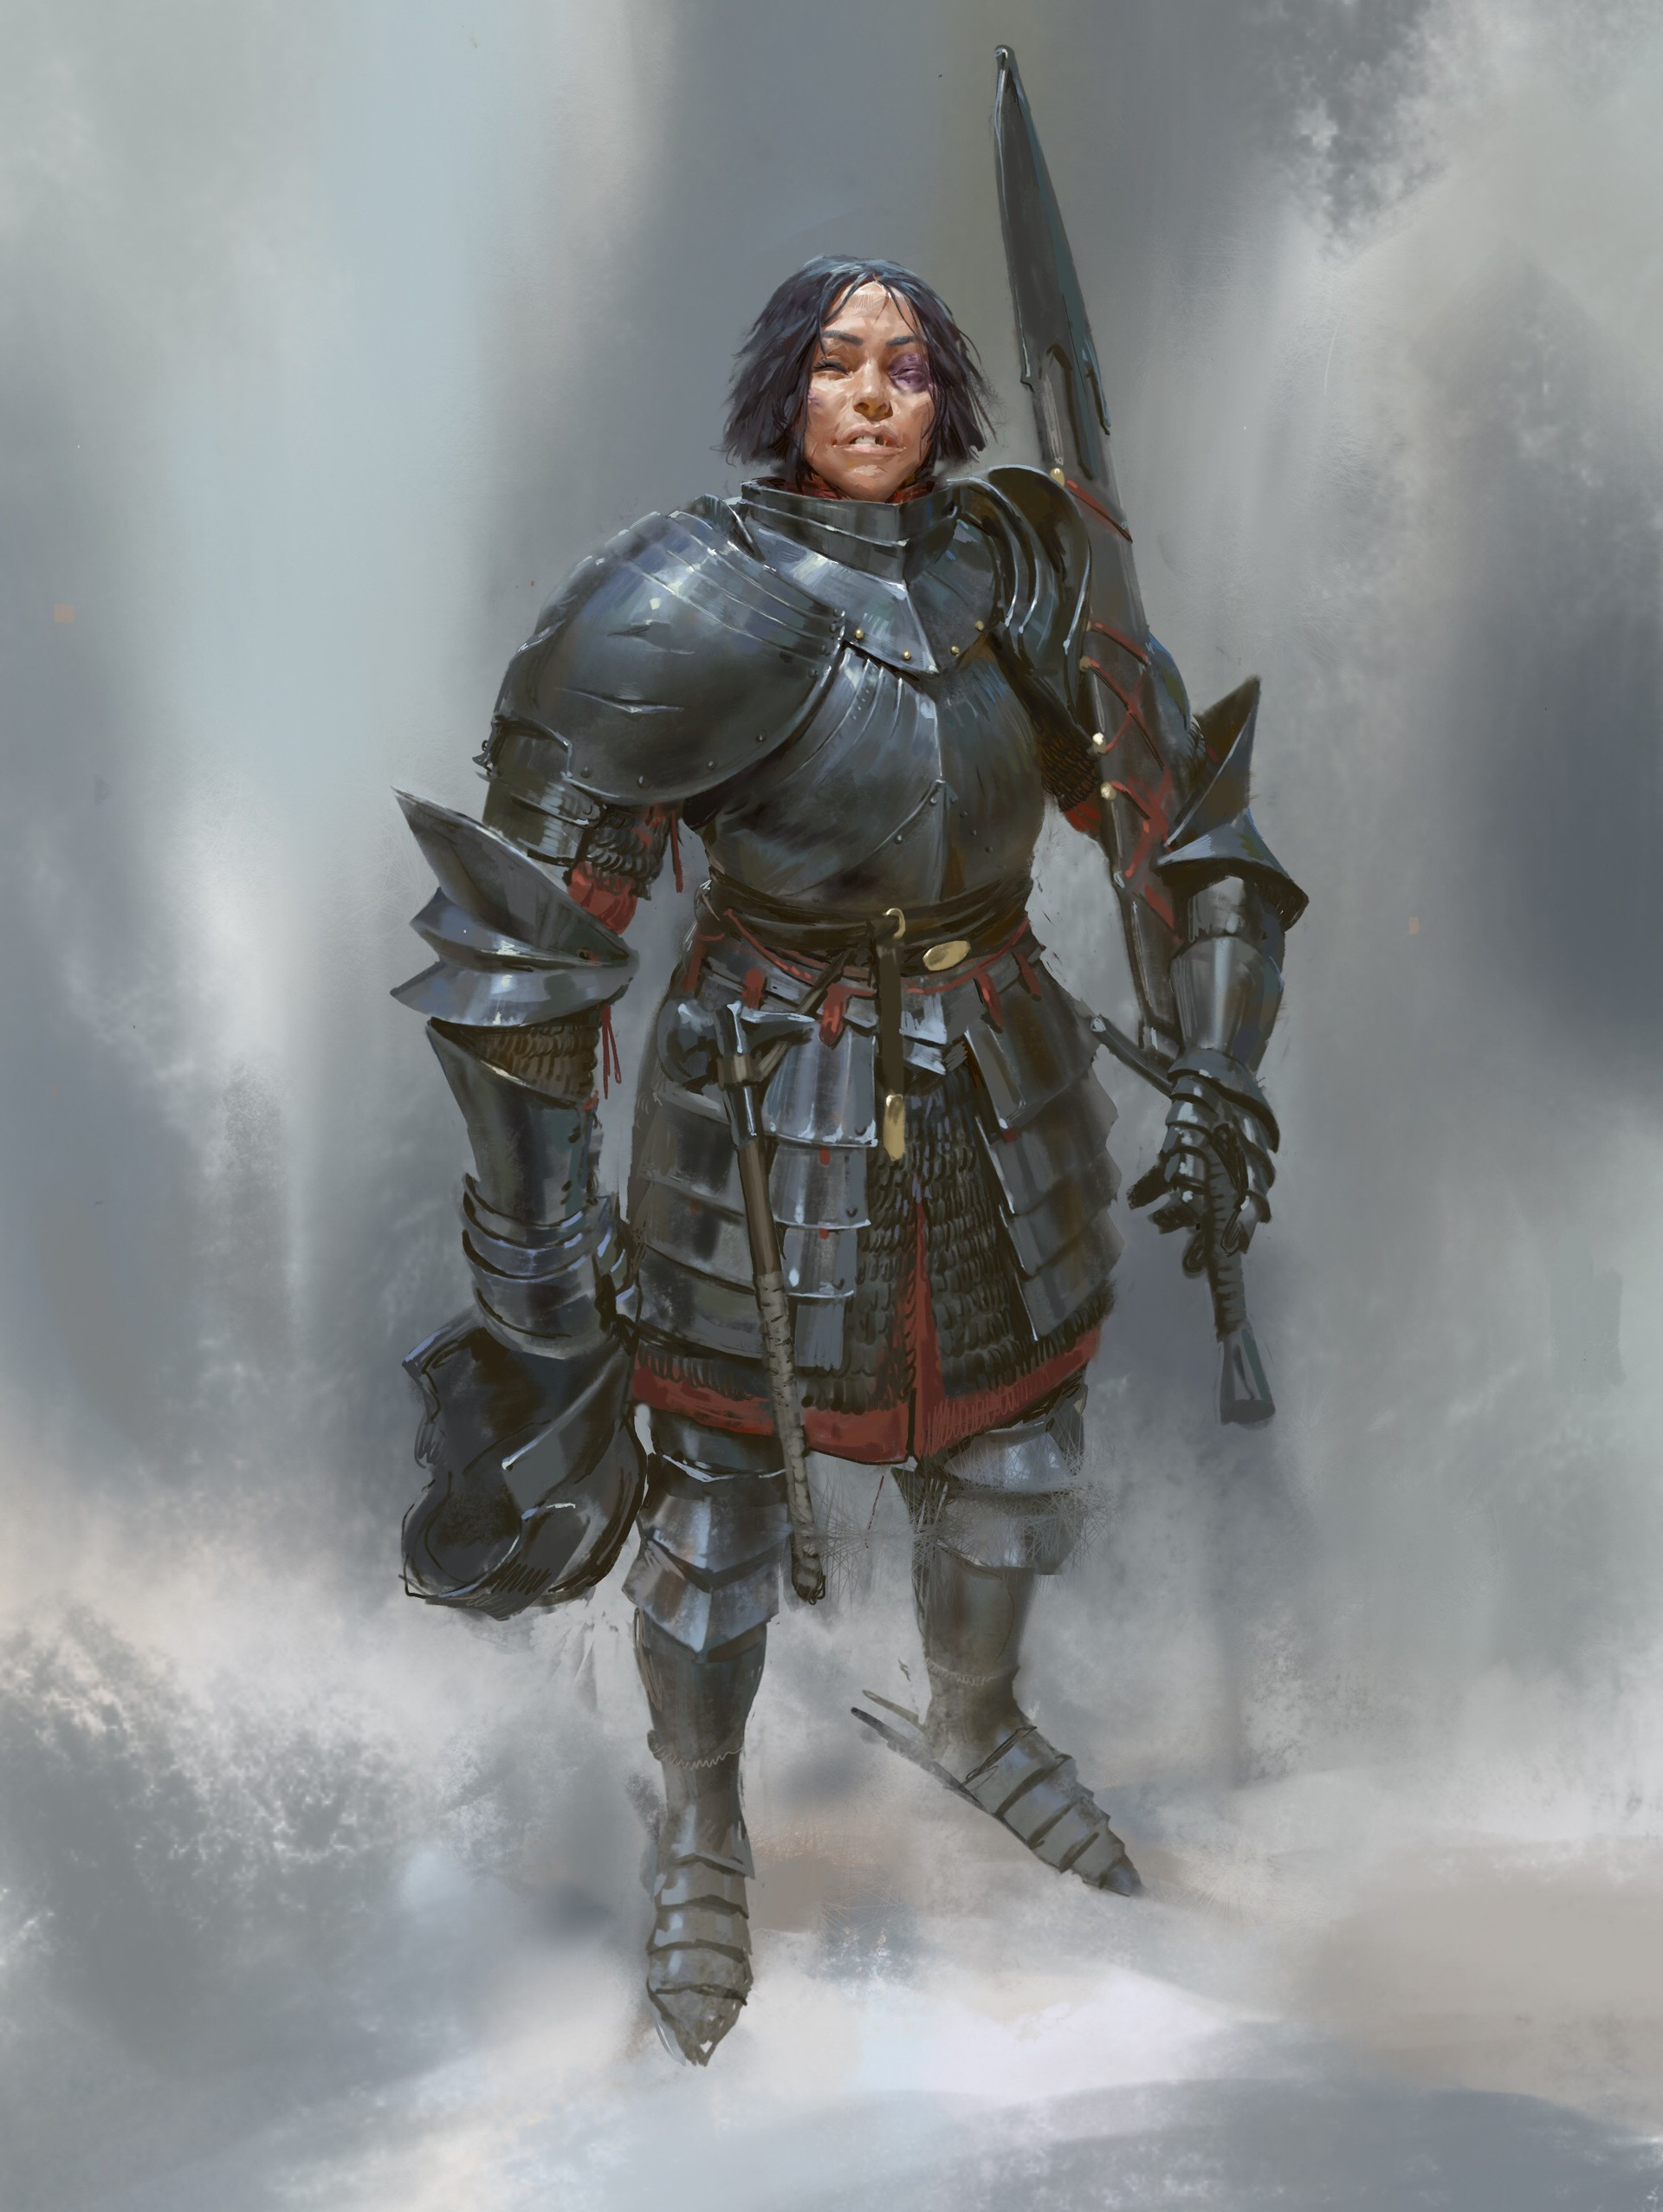 Even amundsen knight lady